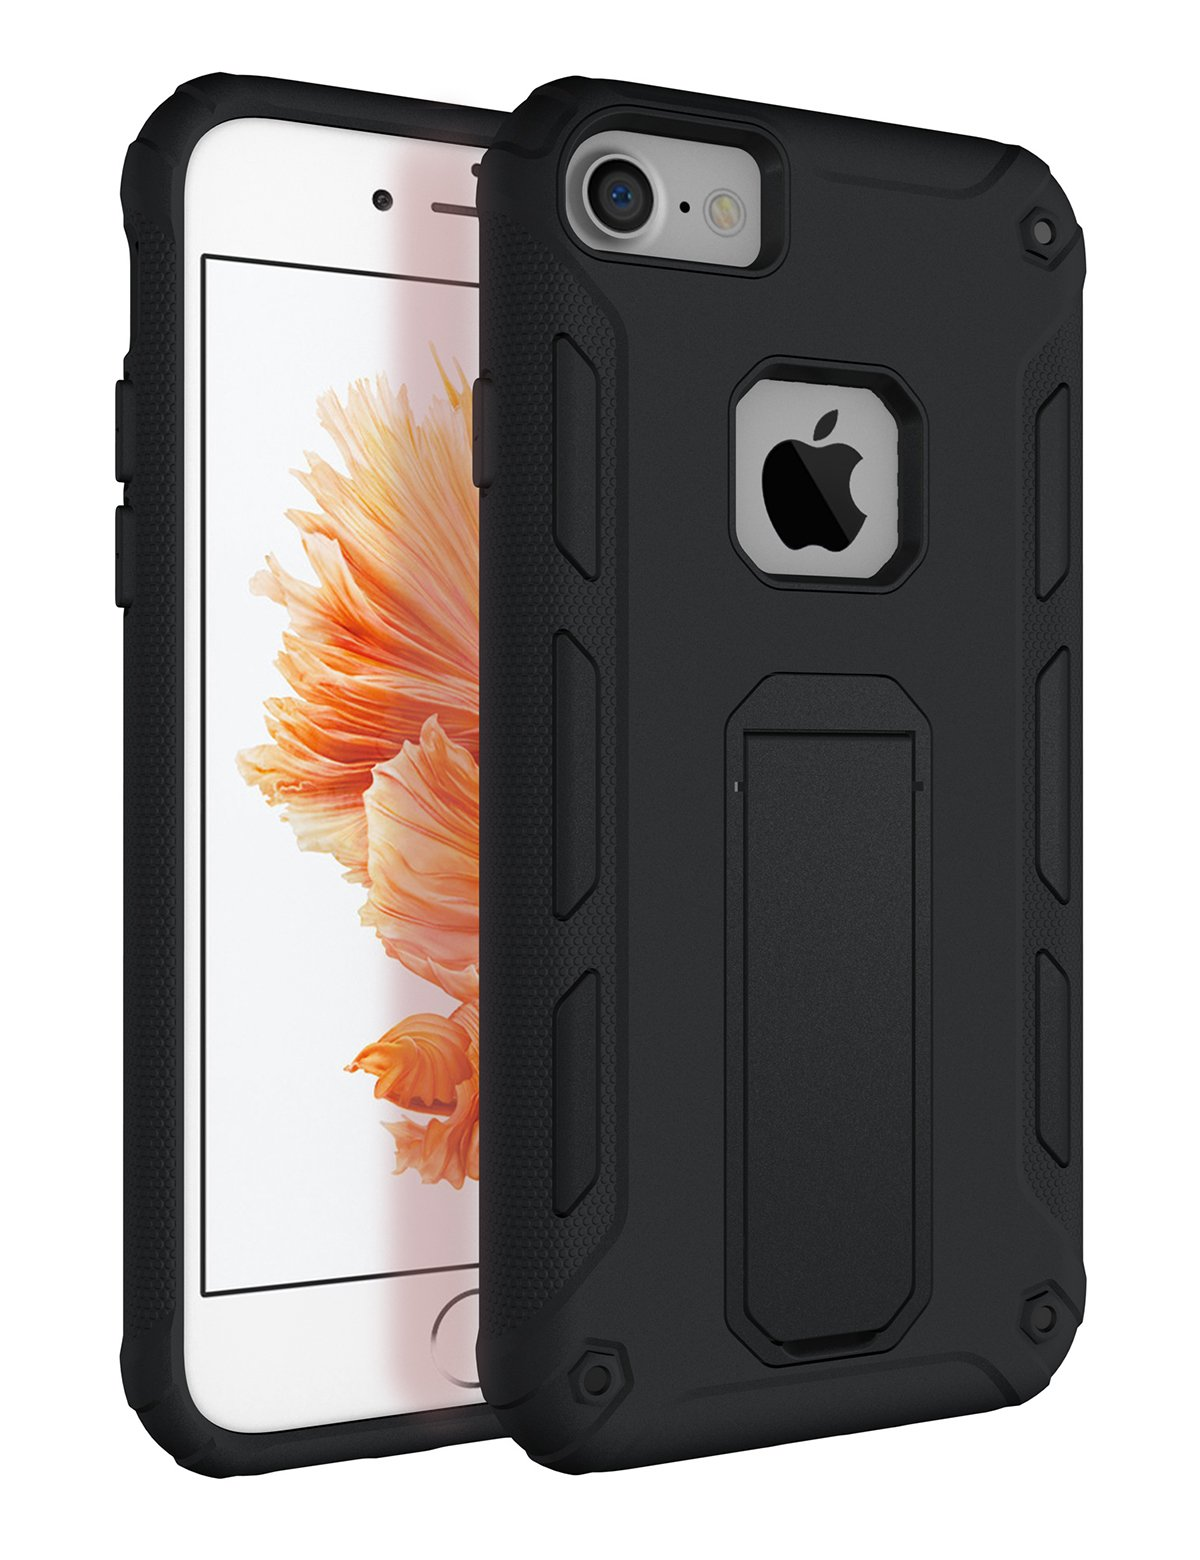 iPhone 7 Case, iPhone 8 Case with Kickstand, Tobomoco Hard PC and Soft TPU Bumper Slim Shockproof Drop Protection 2 in 1 Protective Phone Case Cover for Apple iPhone 7/8 [4.7 inch], Black